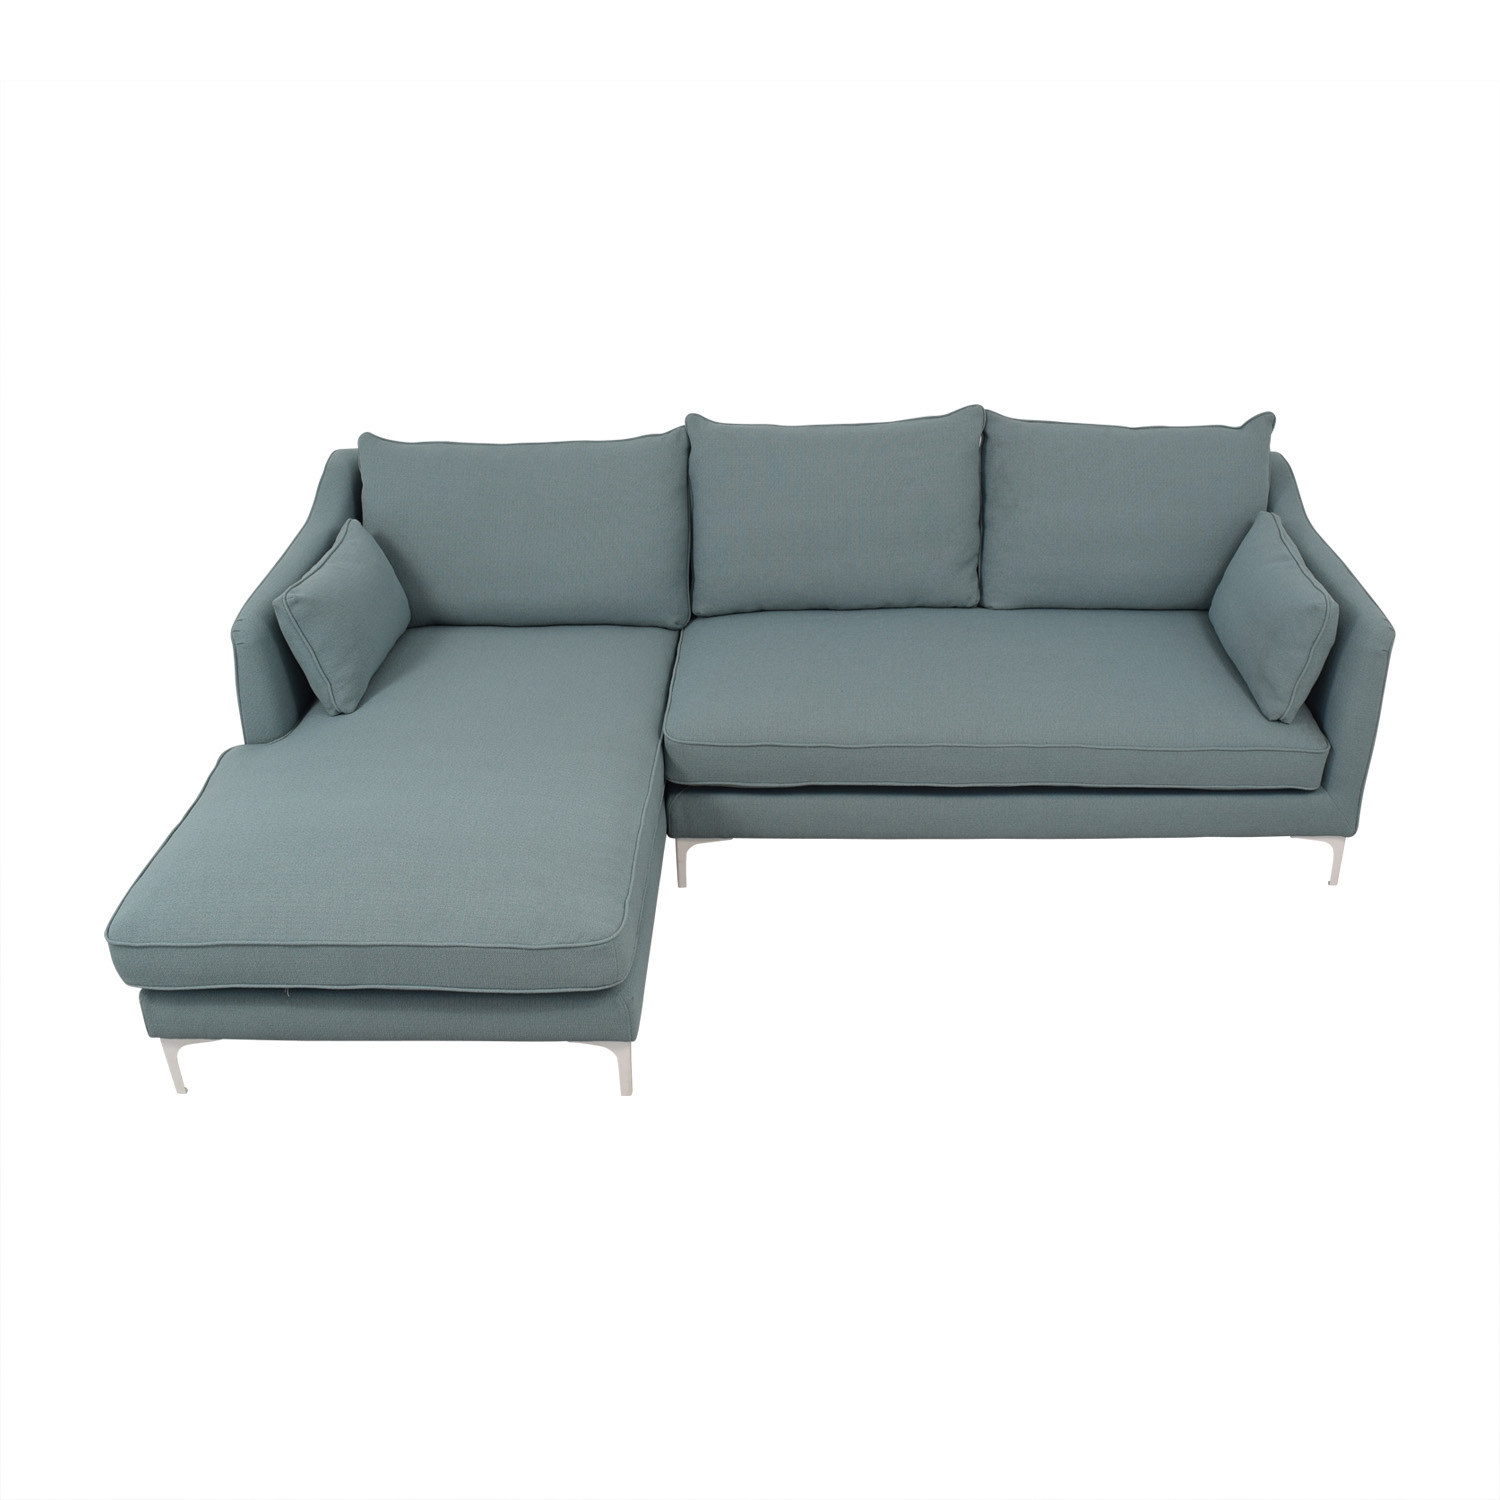 Tremendous 72 Off Mint Green Caitlin Left Arm Chaise Sectional Sofa Sofas Download Free Architecture Designs Sospemadebymaigaardcom